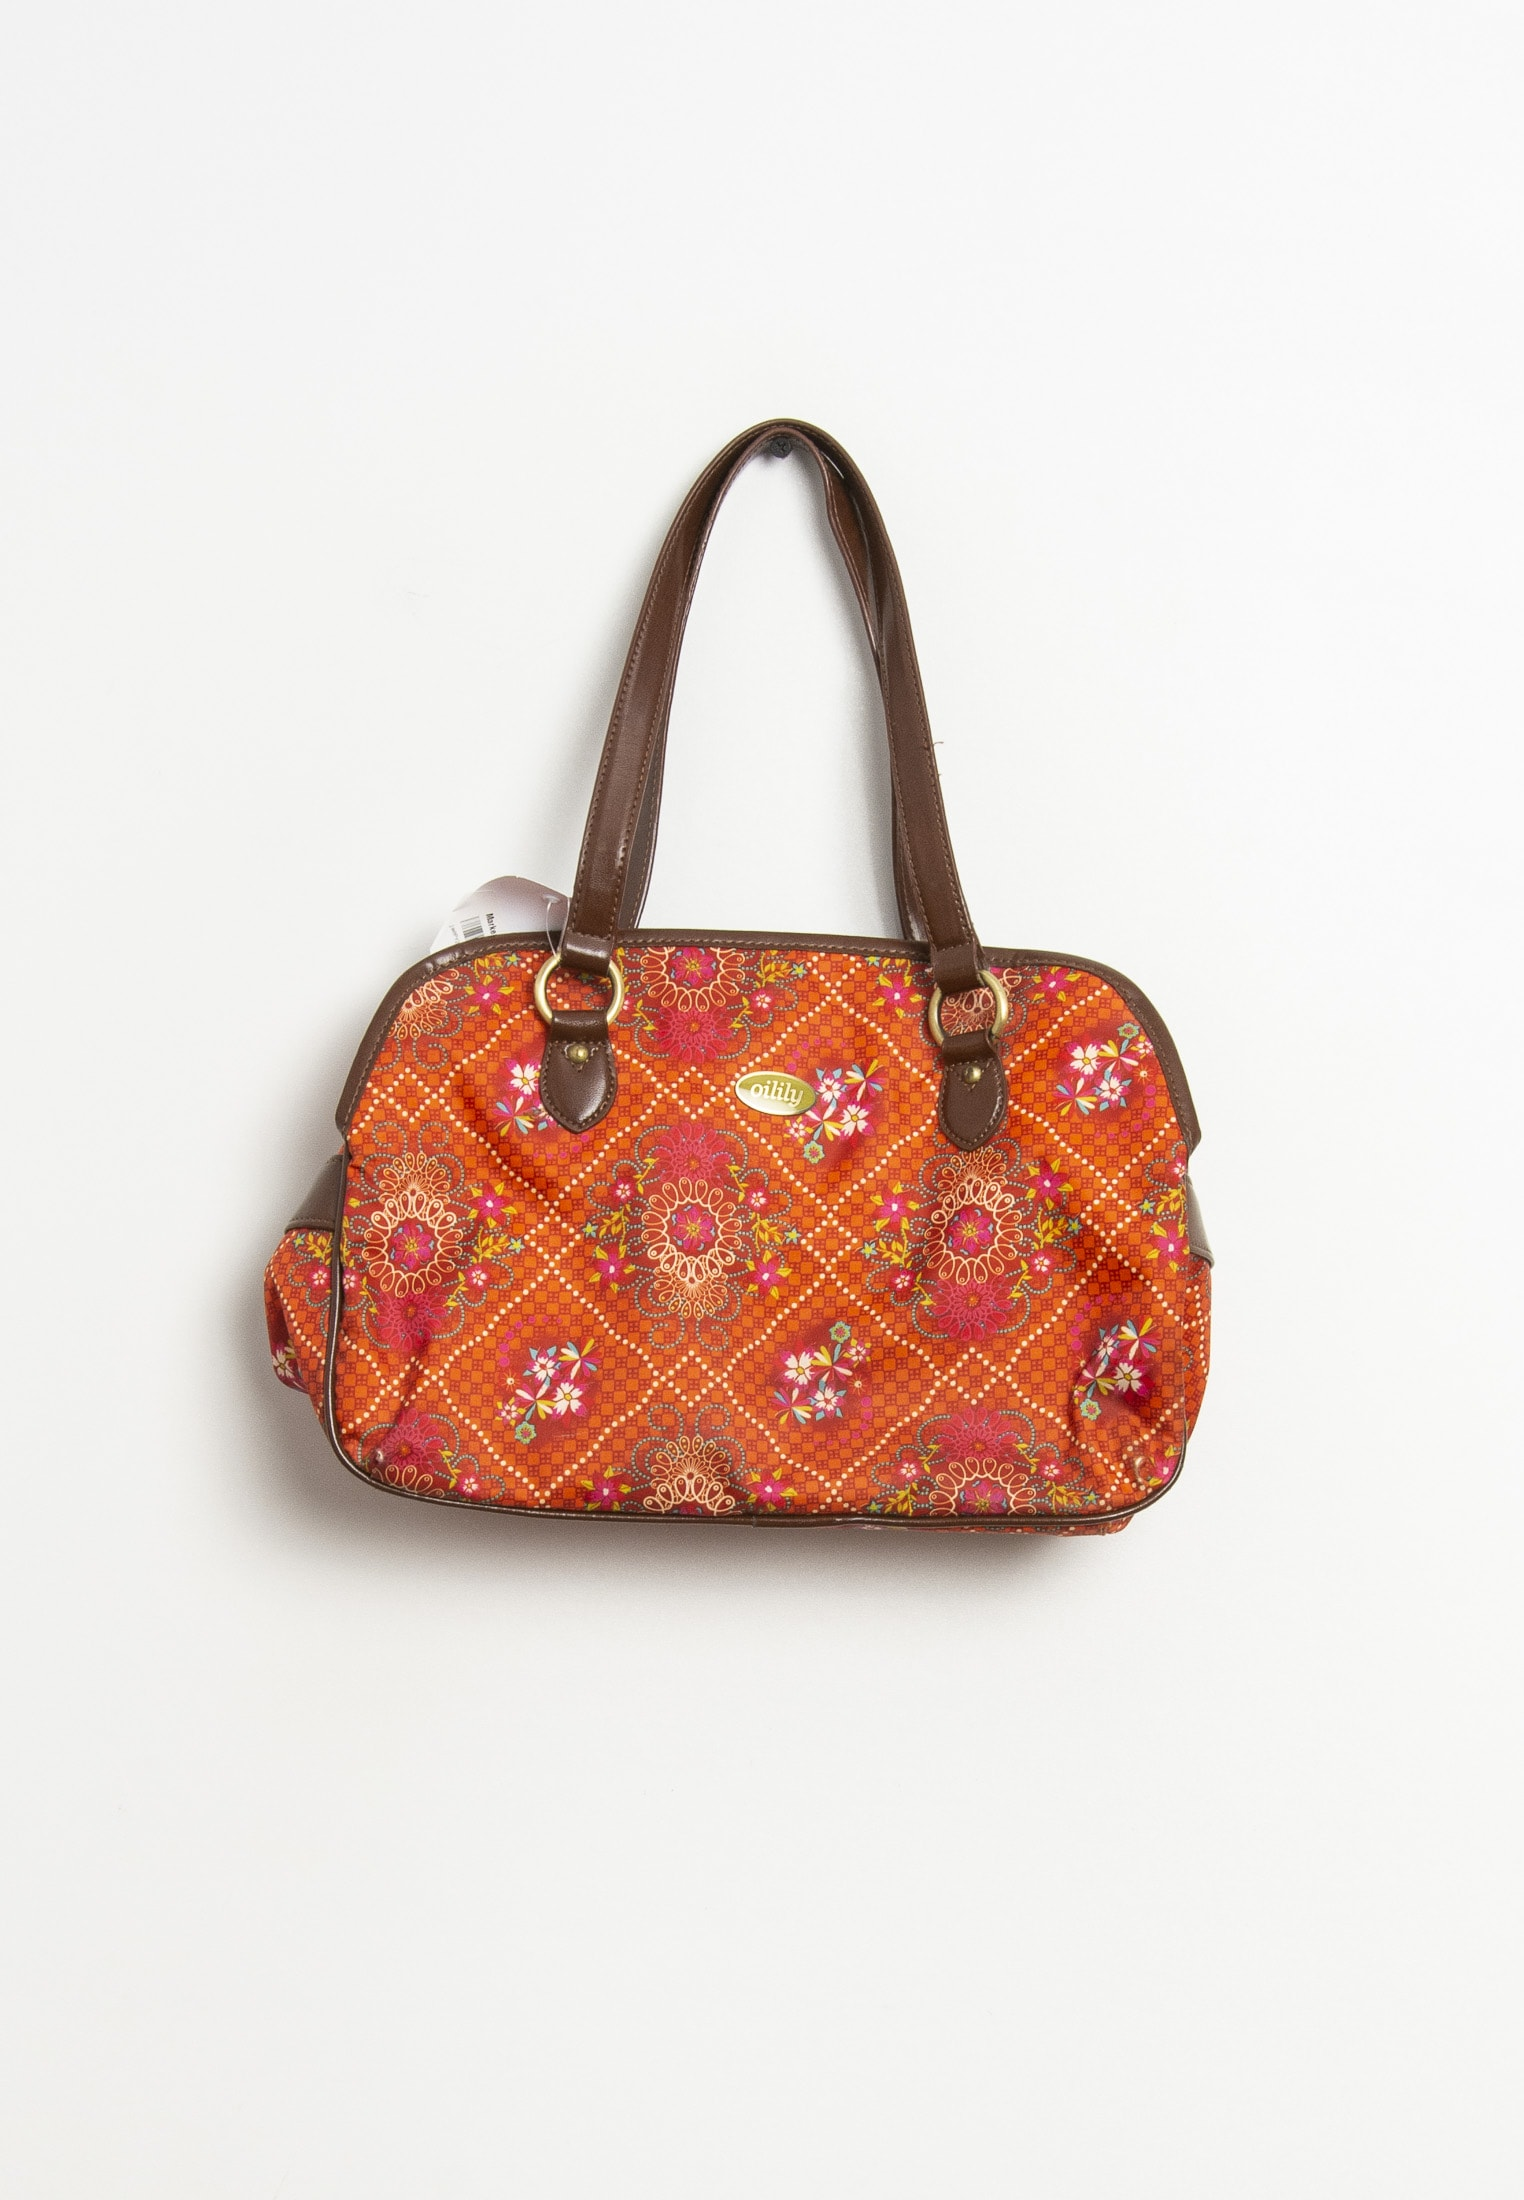 Oilily Tasche Orange